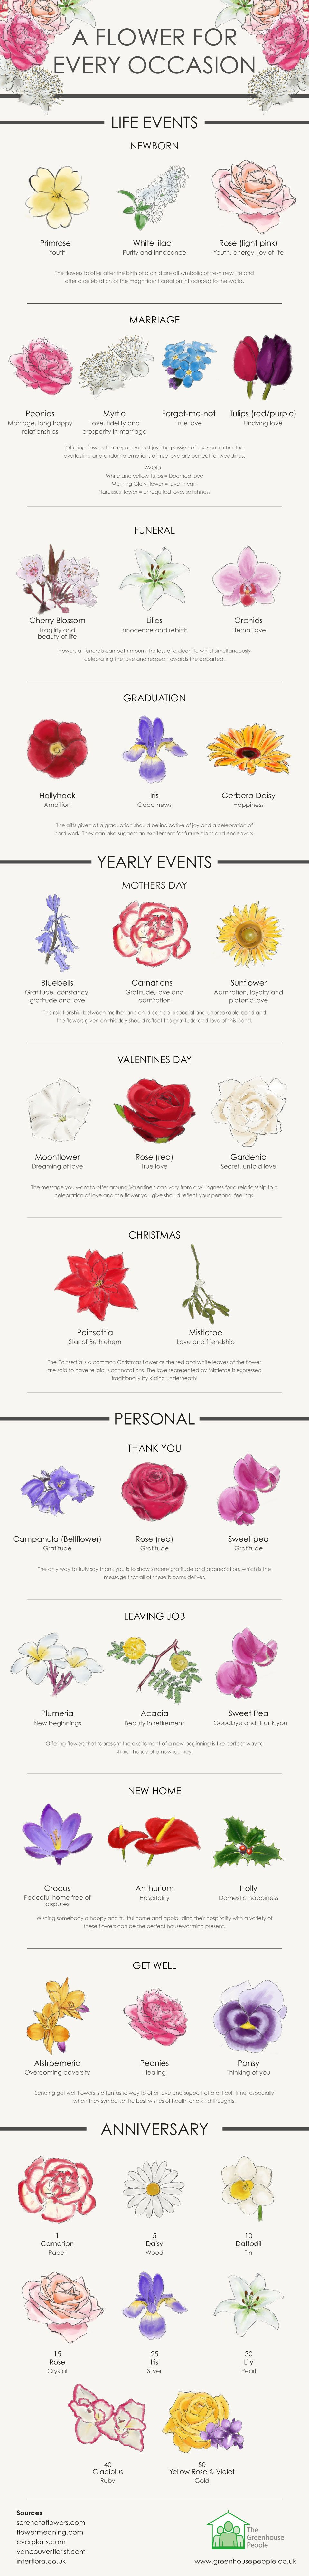 How to choose the perfect flower for your occasion infographic how to choose the perfect flower for your occasion infographic izmirmasajfo